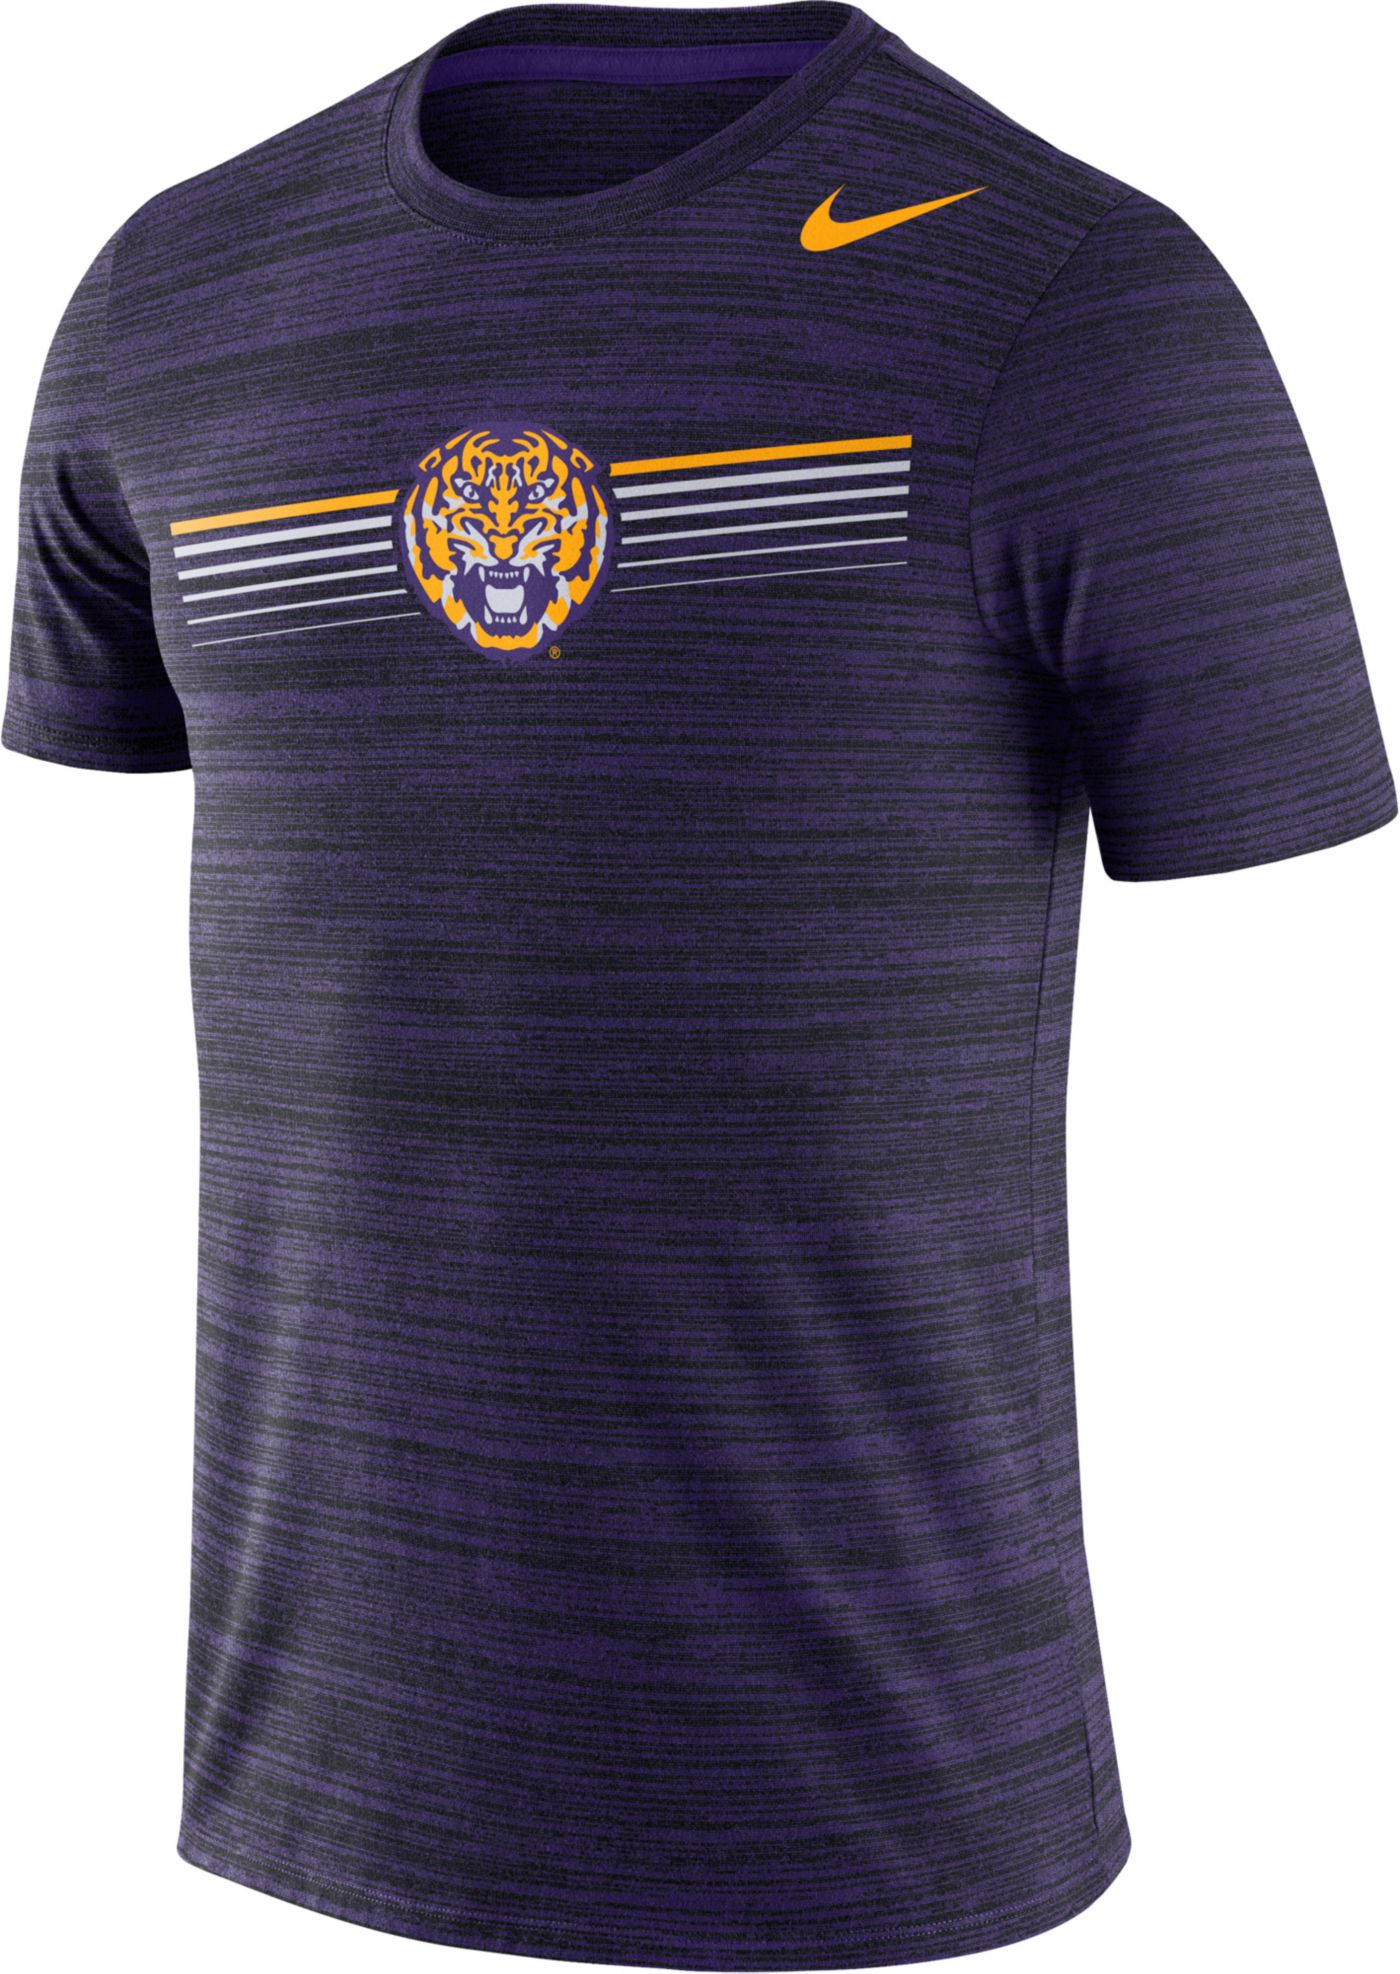 Nike Men's LSU Tigers Purple Velocity Legend Graphic T-Shirt